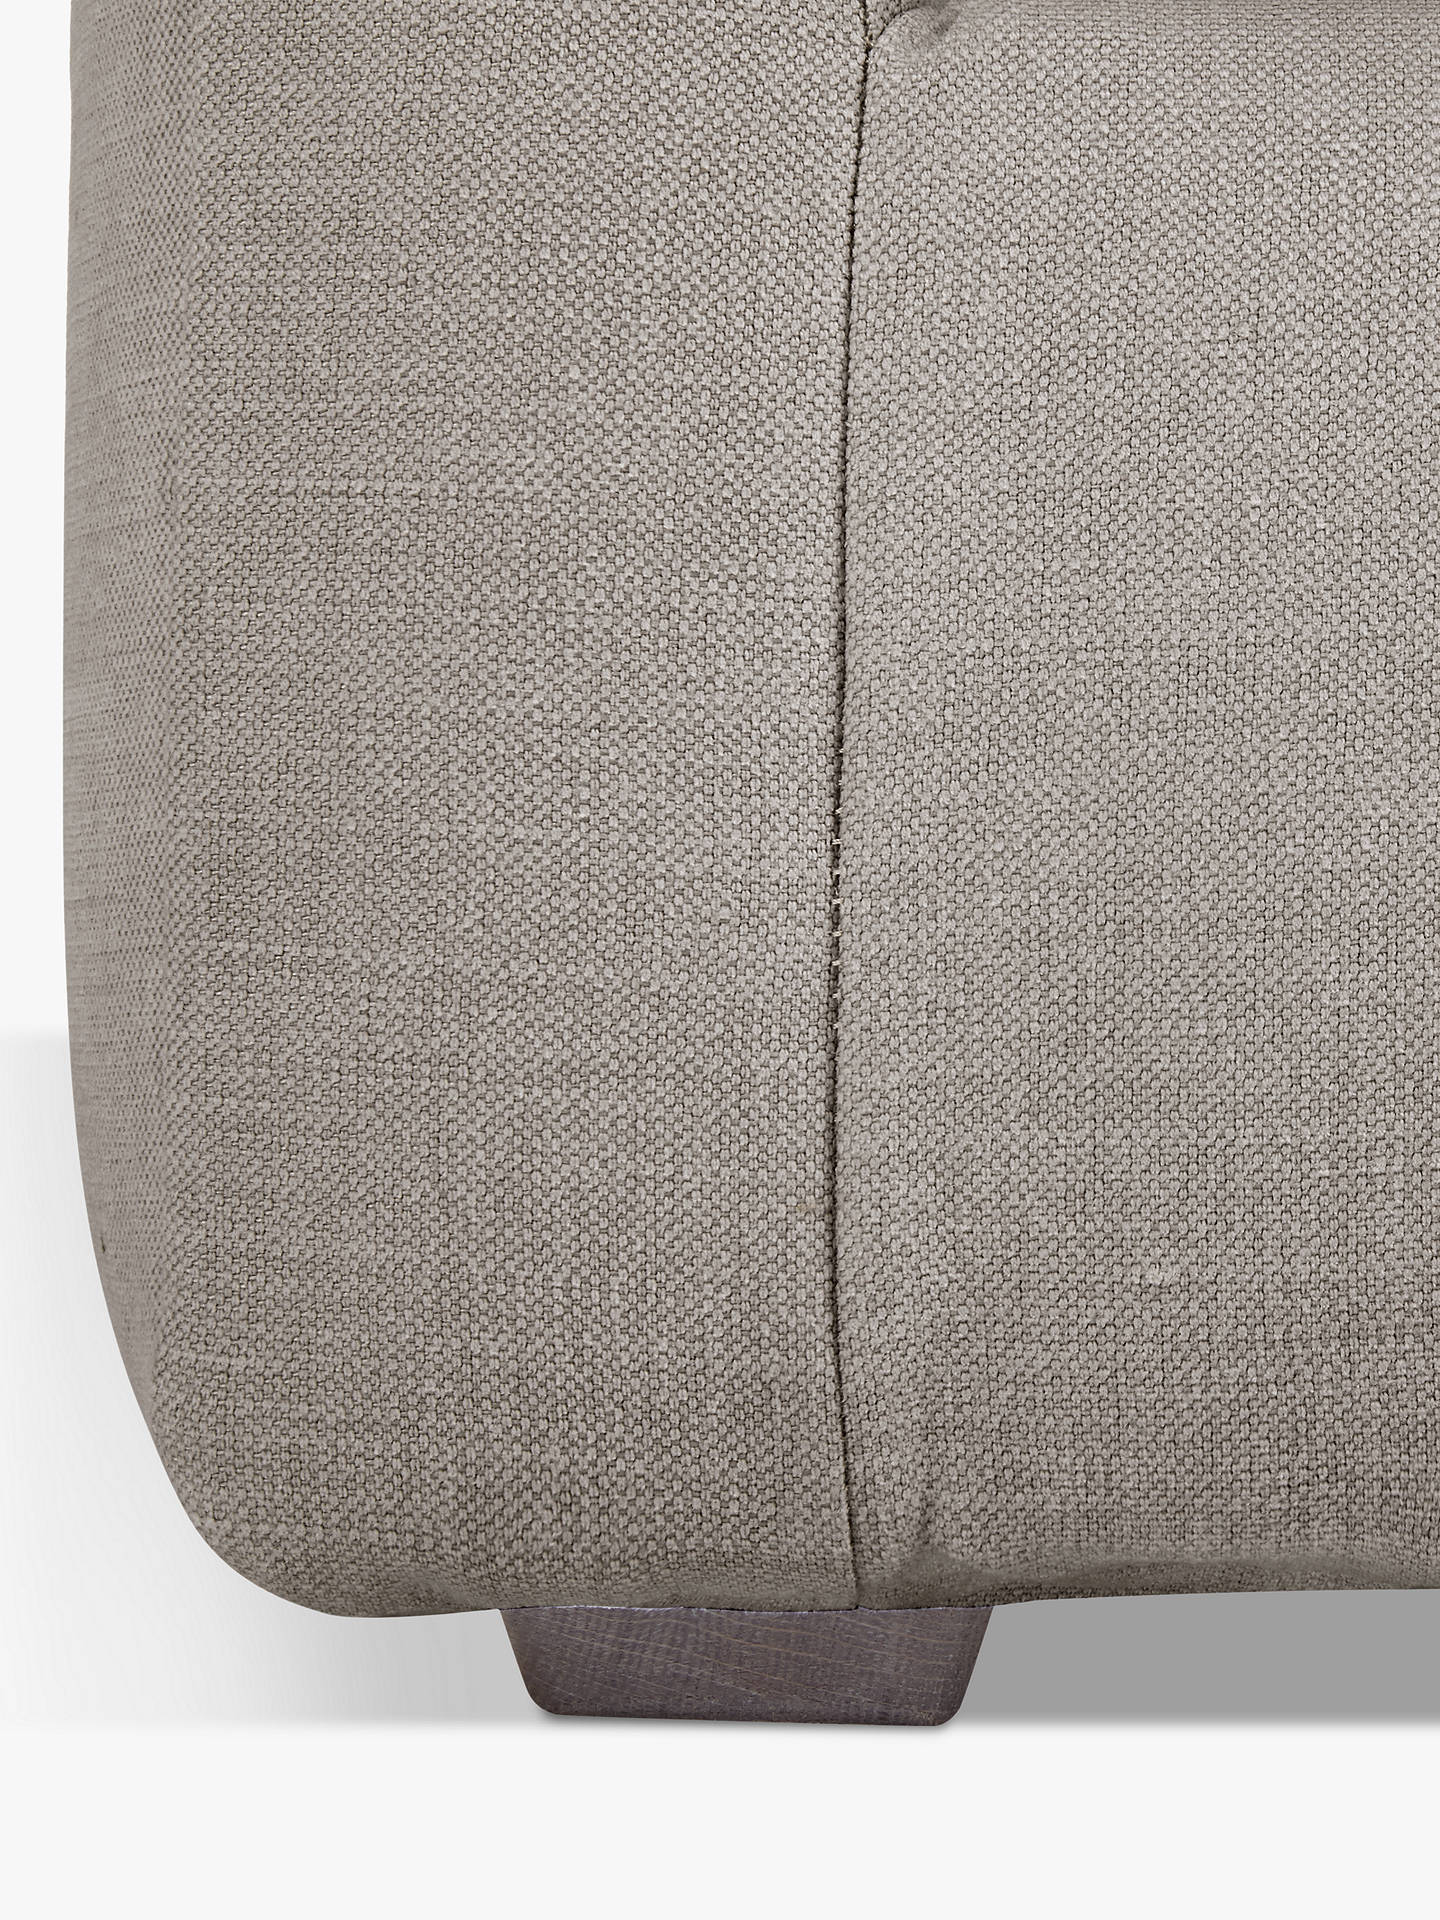 Buy Floppy Jo Snuggler by Loaf at John Lewis, Brushed Cotton Wolf Online at johnlewis.com